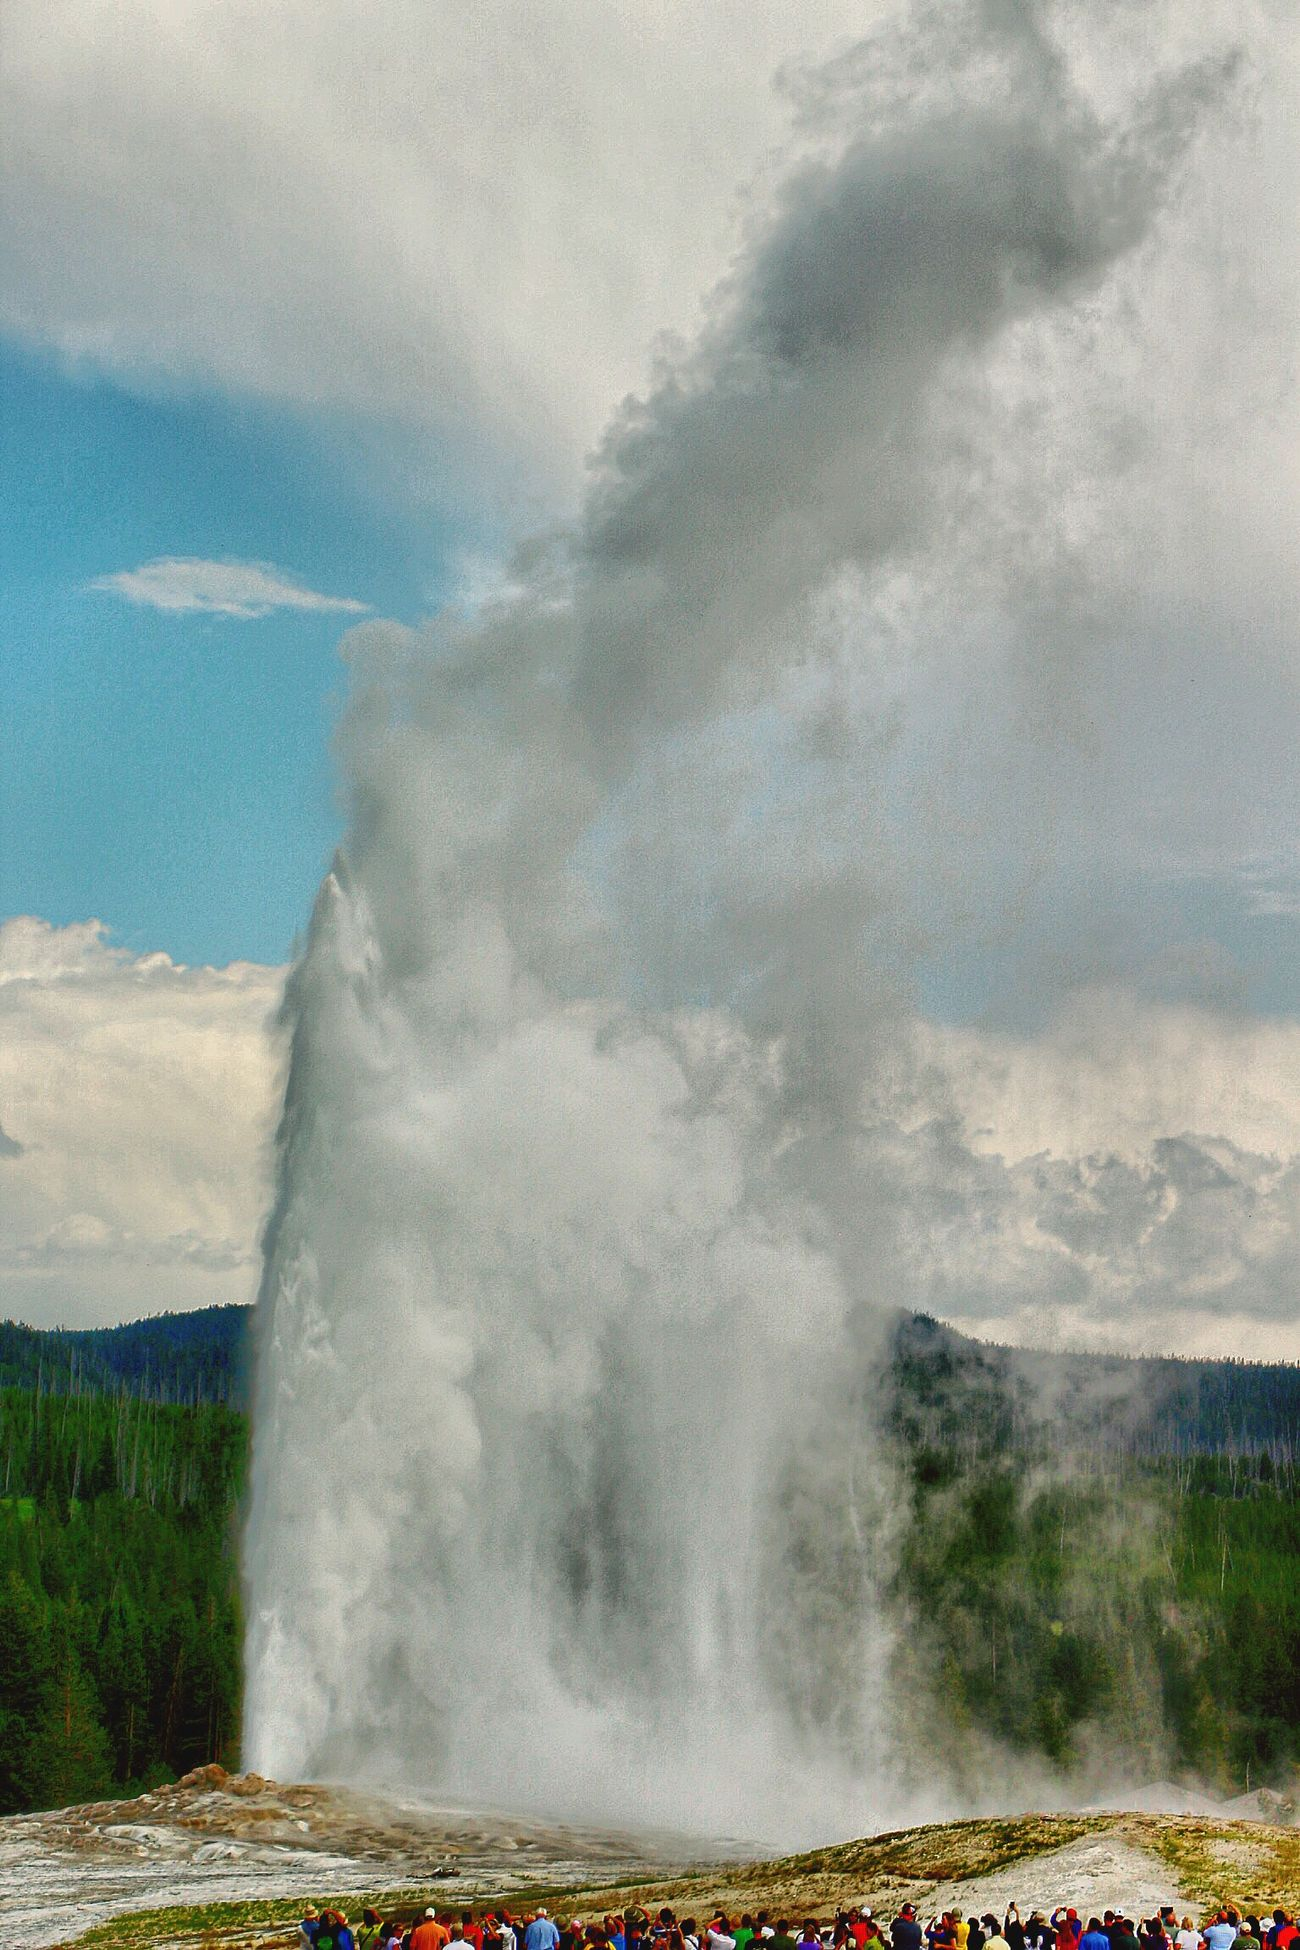 Old Faithful in Yellowstone erupting in full force! Check This Out Nature_collection EyeEm Nature Lover Travel Photography Landscape The Moment - 2015 EyeEm Awards The Great Outdoors - 2015 EyeEm Awards Eye4photography